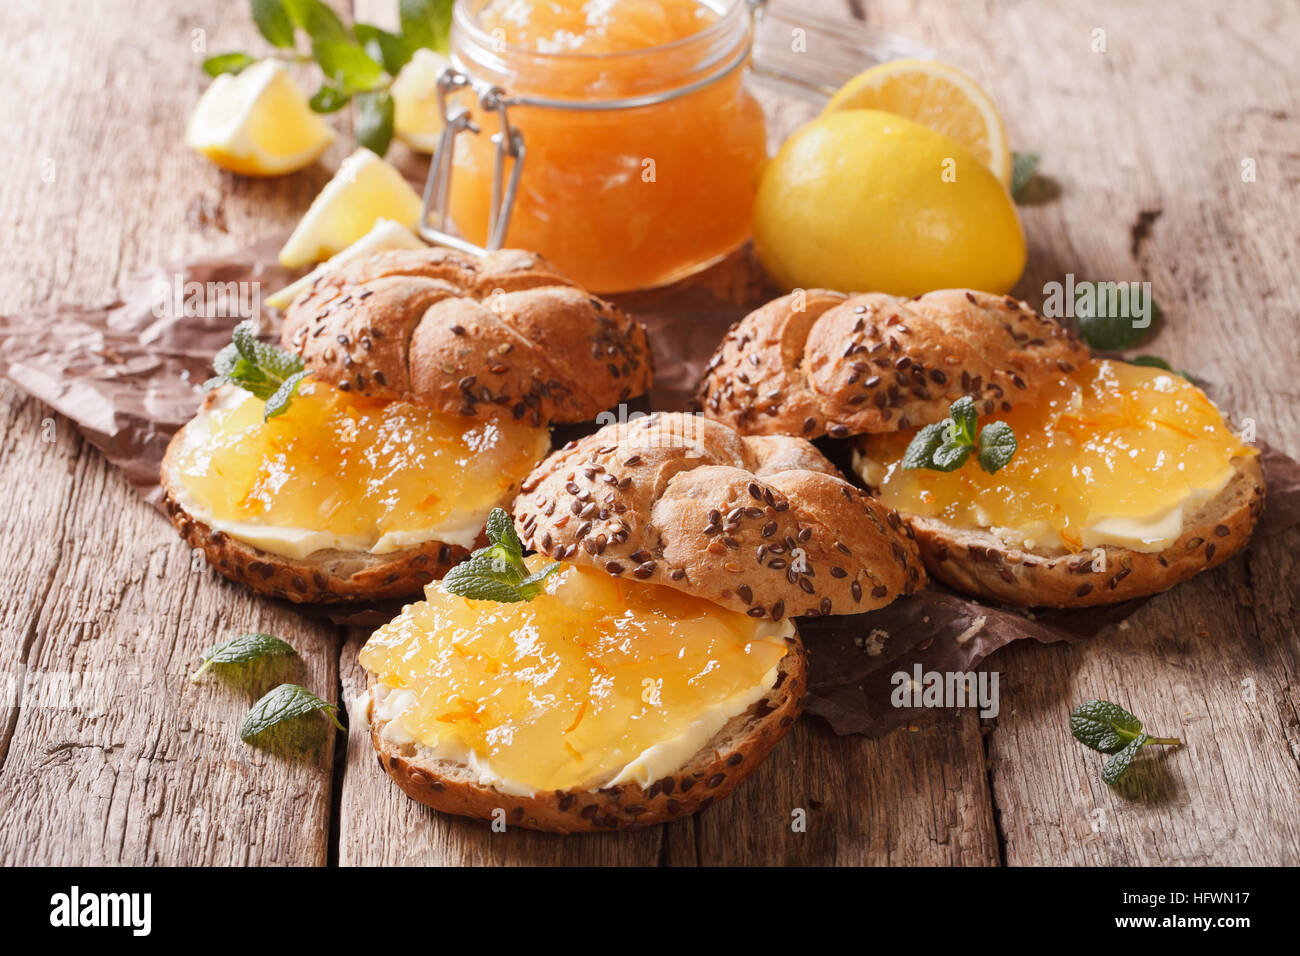 Sweet sandwiches with lemon marmalade, mint and butter on the table close-up. Horizontal - Stock Image